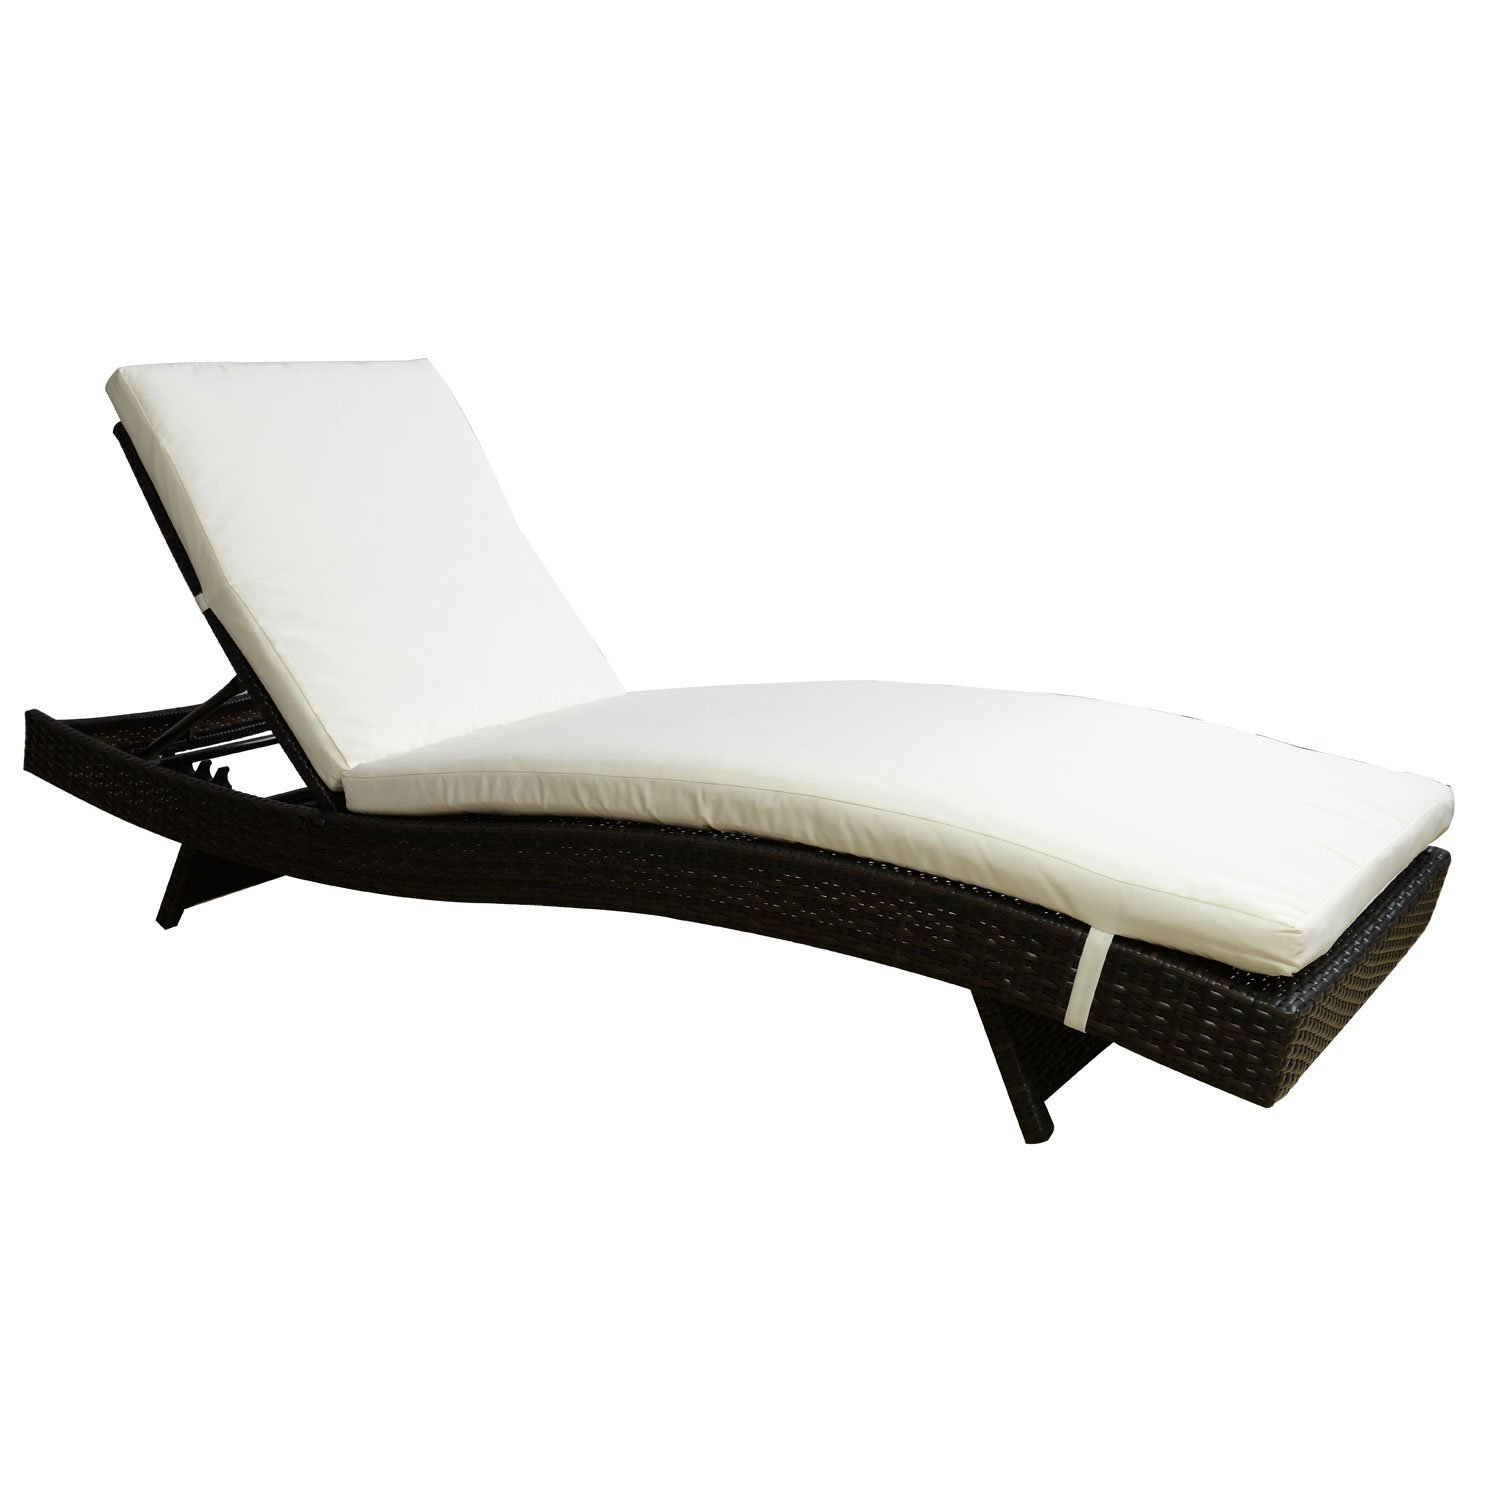 Amazon.com: Tangkula Adjustable Pool Chaise Lounge Chair Outdoor ...